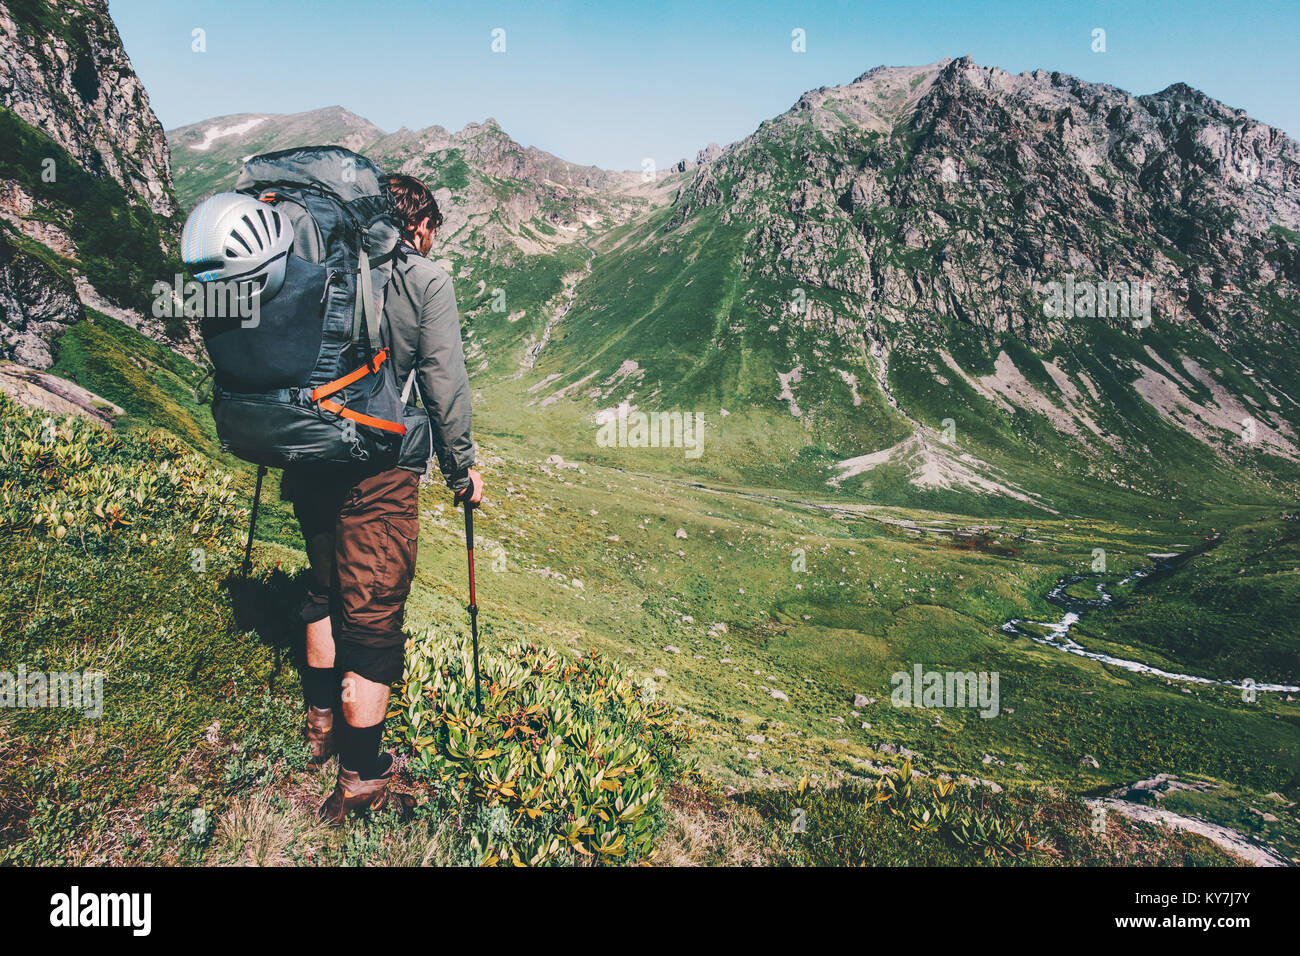 Man hiking at mountains with heavy big backpack Travel Lifestyle wanderlust adventure concept summer active vacations - Stock Image